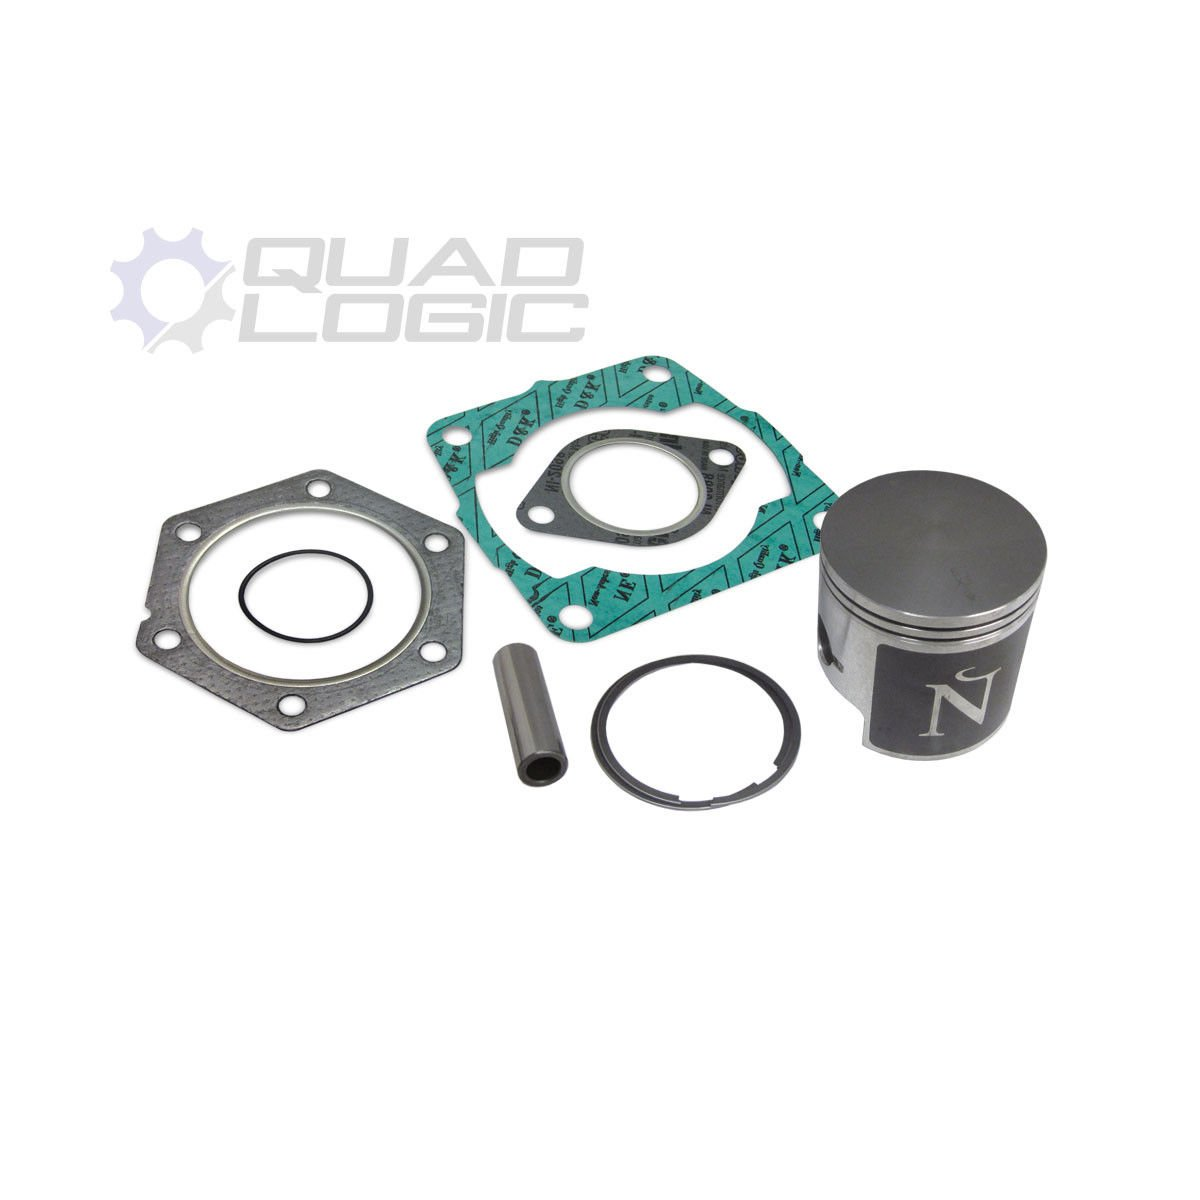 Polaris 300 Xplorer 300 Xpress 300 2x4 4x4 Top End Gasket Set and STD. Piston Quad Logic